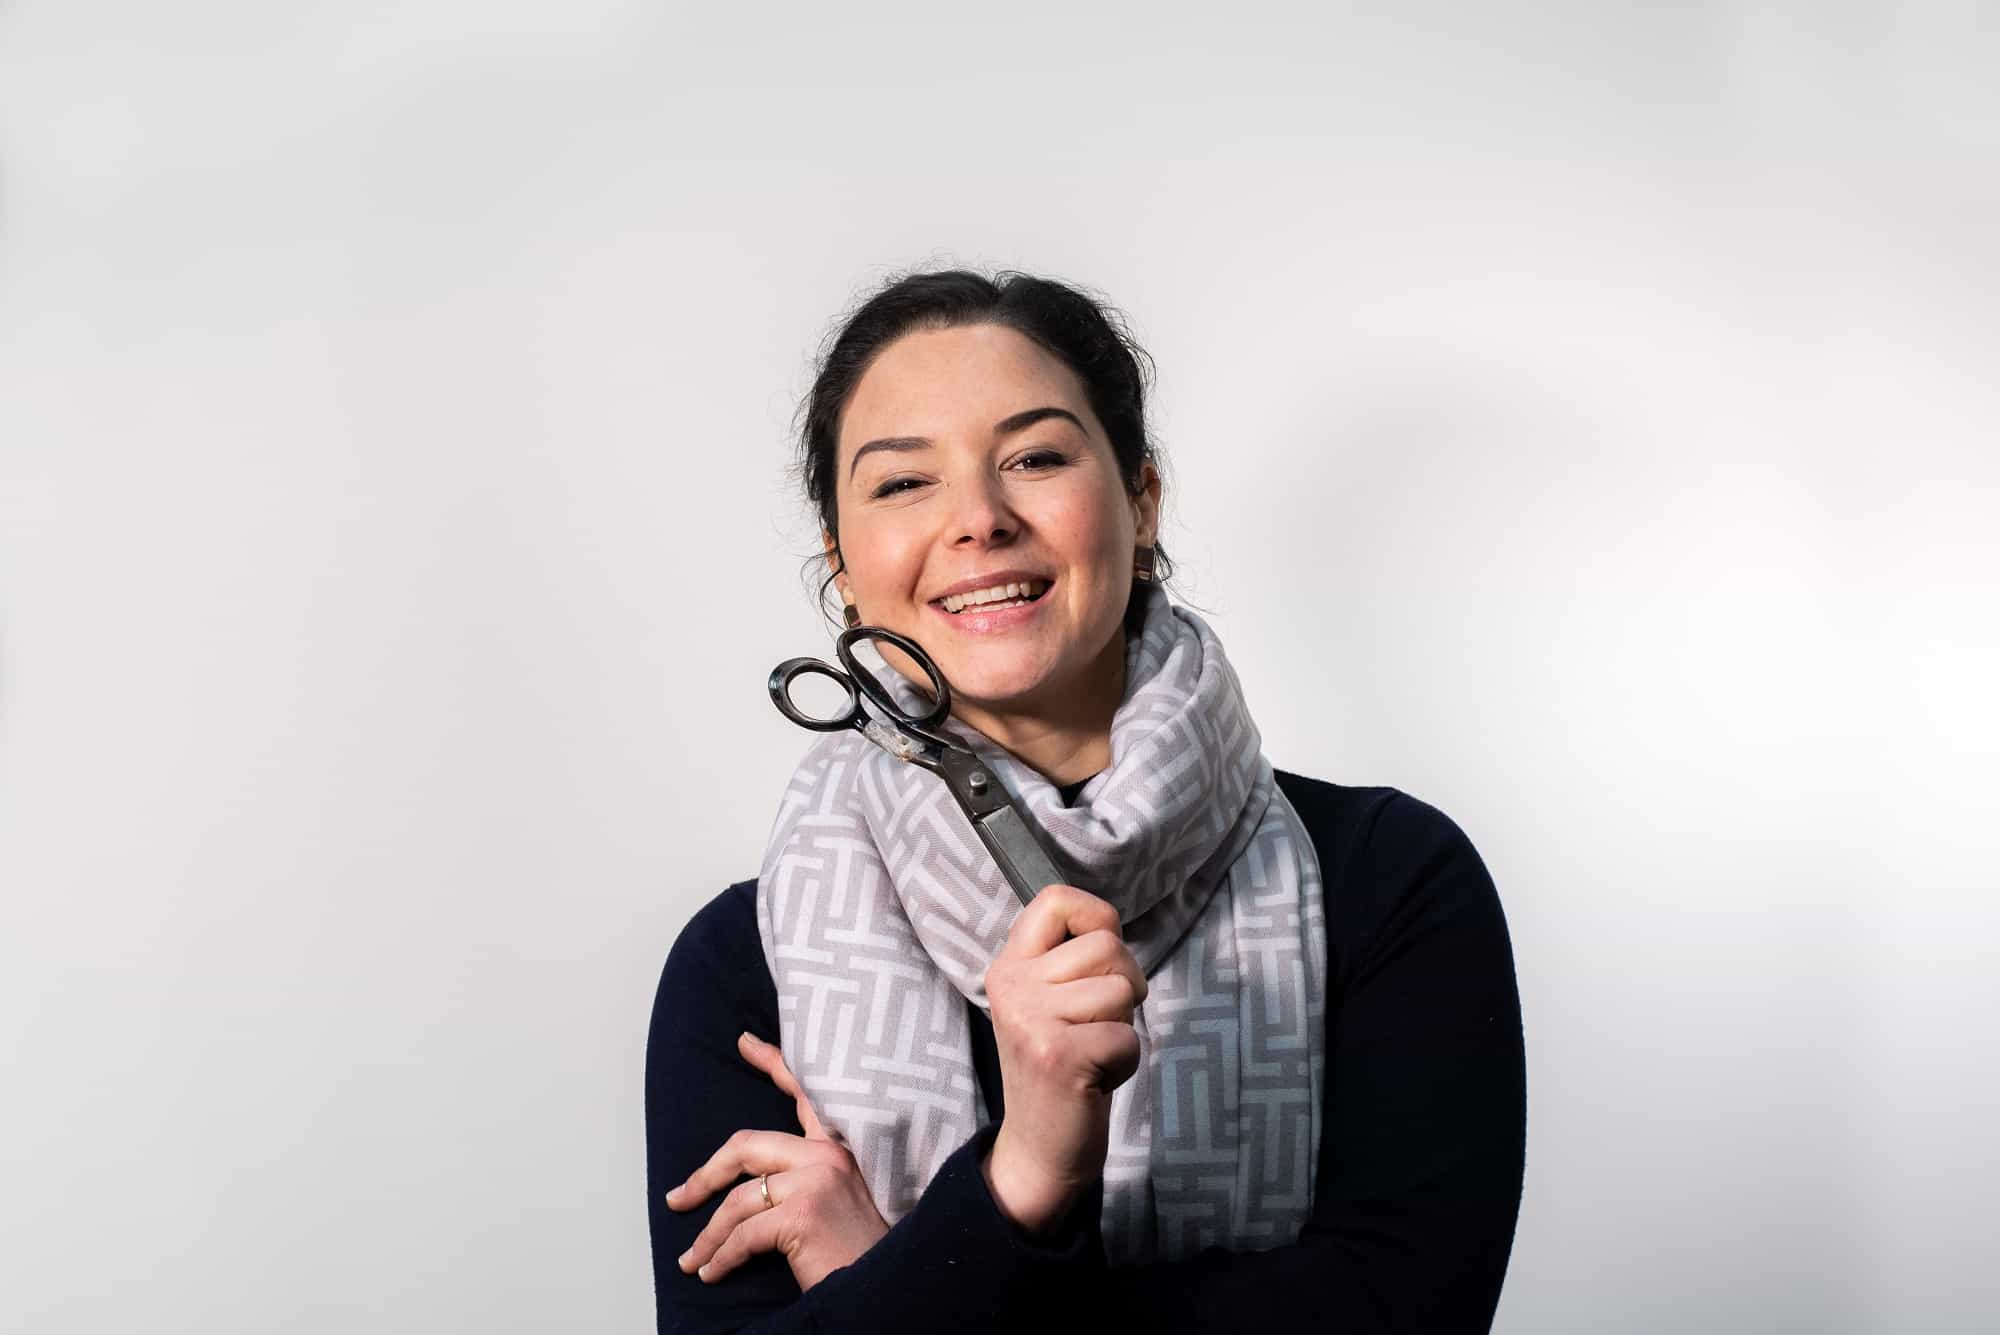 relaxed fun portrait for her business smiling at camera holding some scissors from her upholstery business